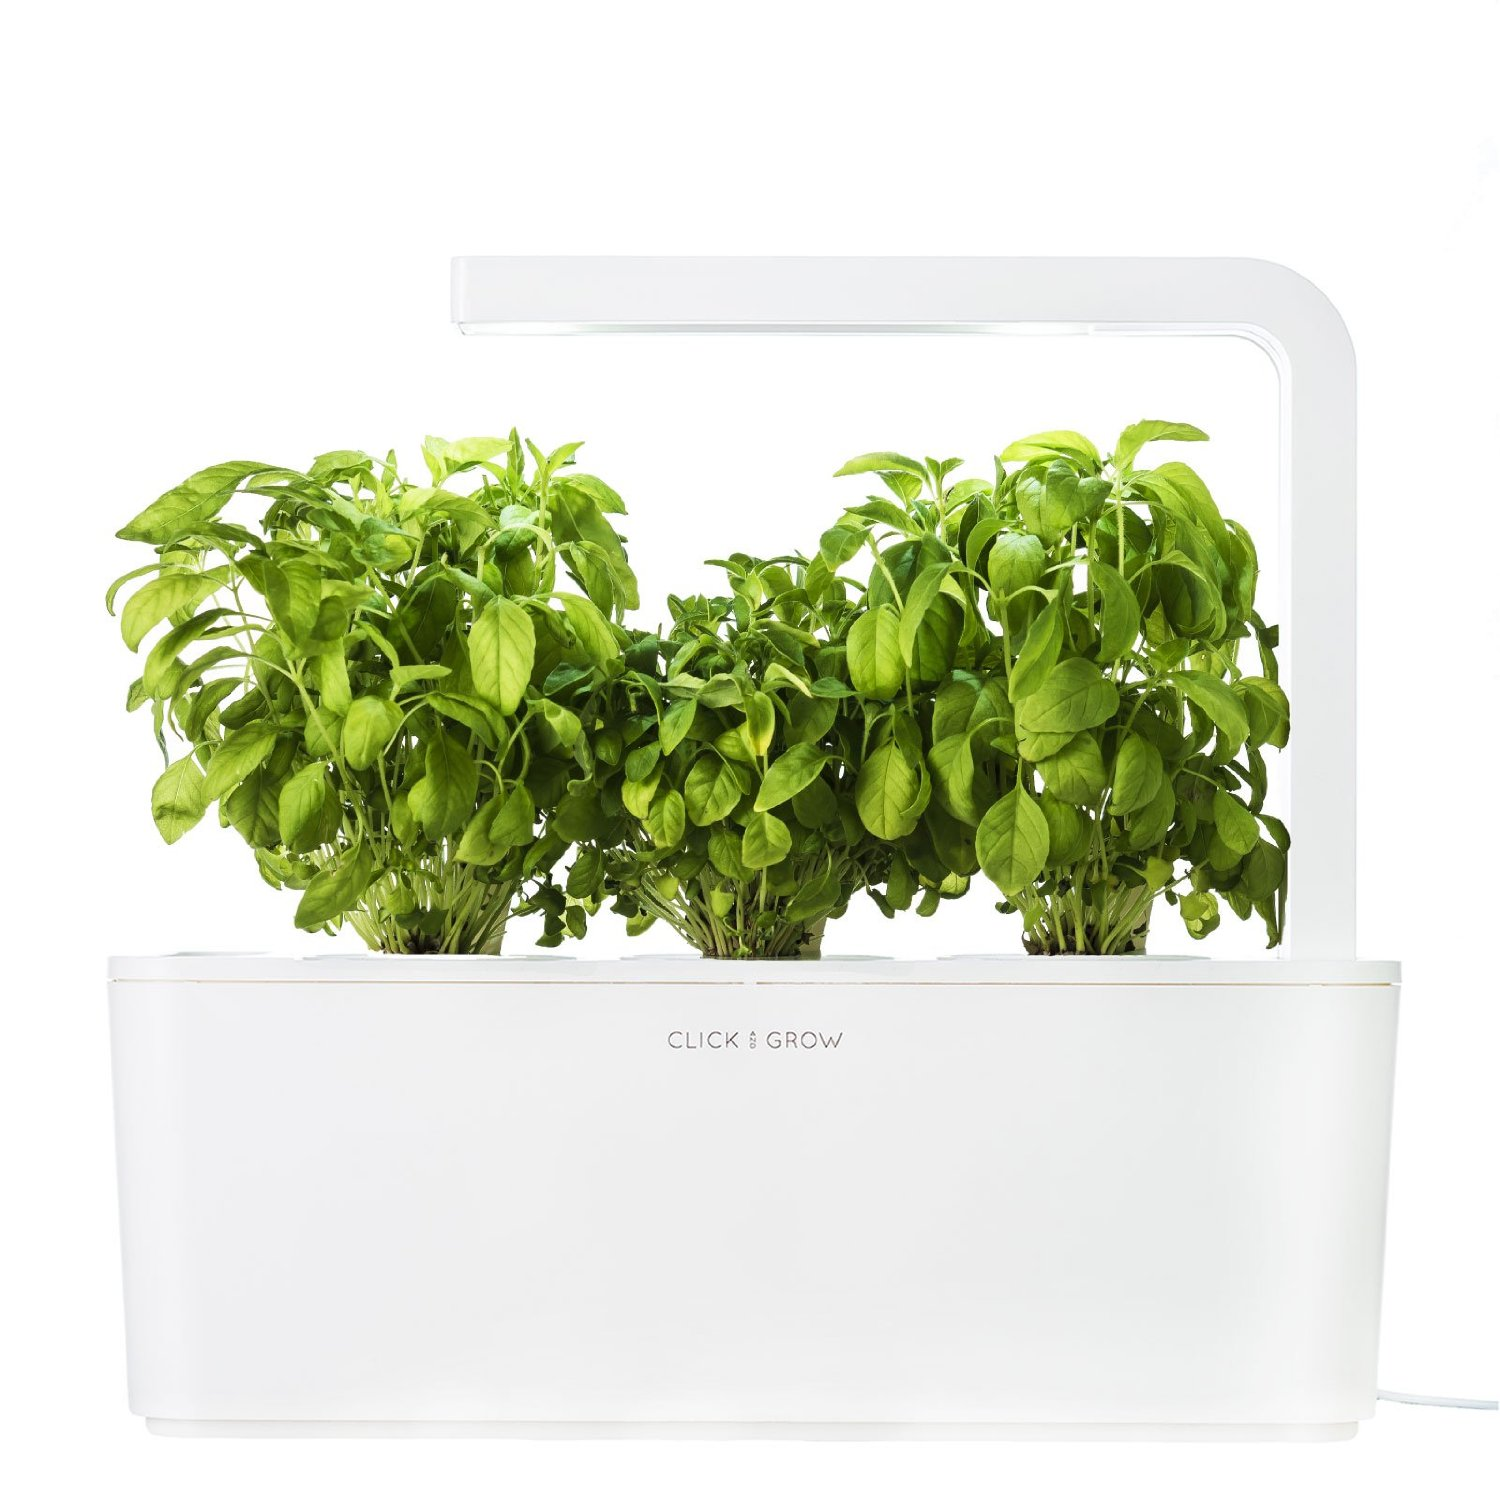 Does The Click And Grow Garden System Actually Work Kitchn